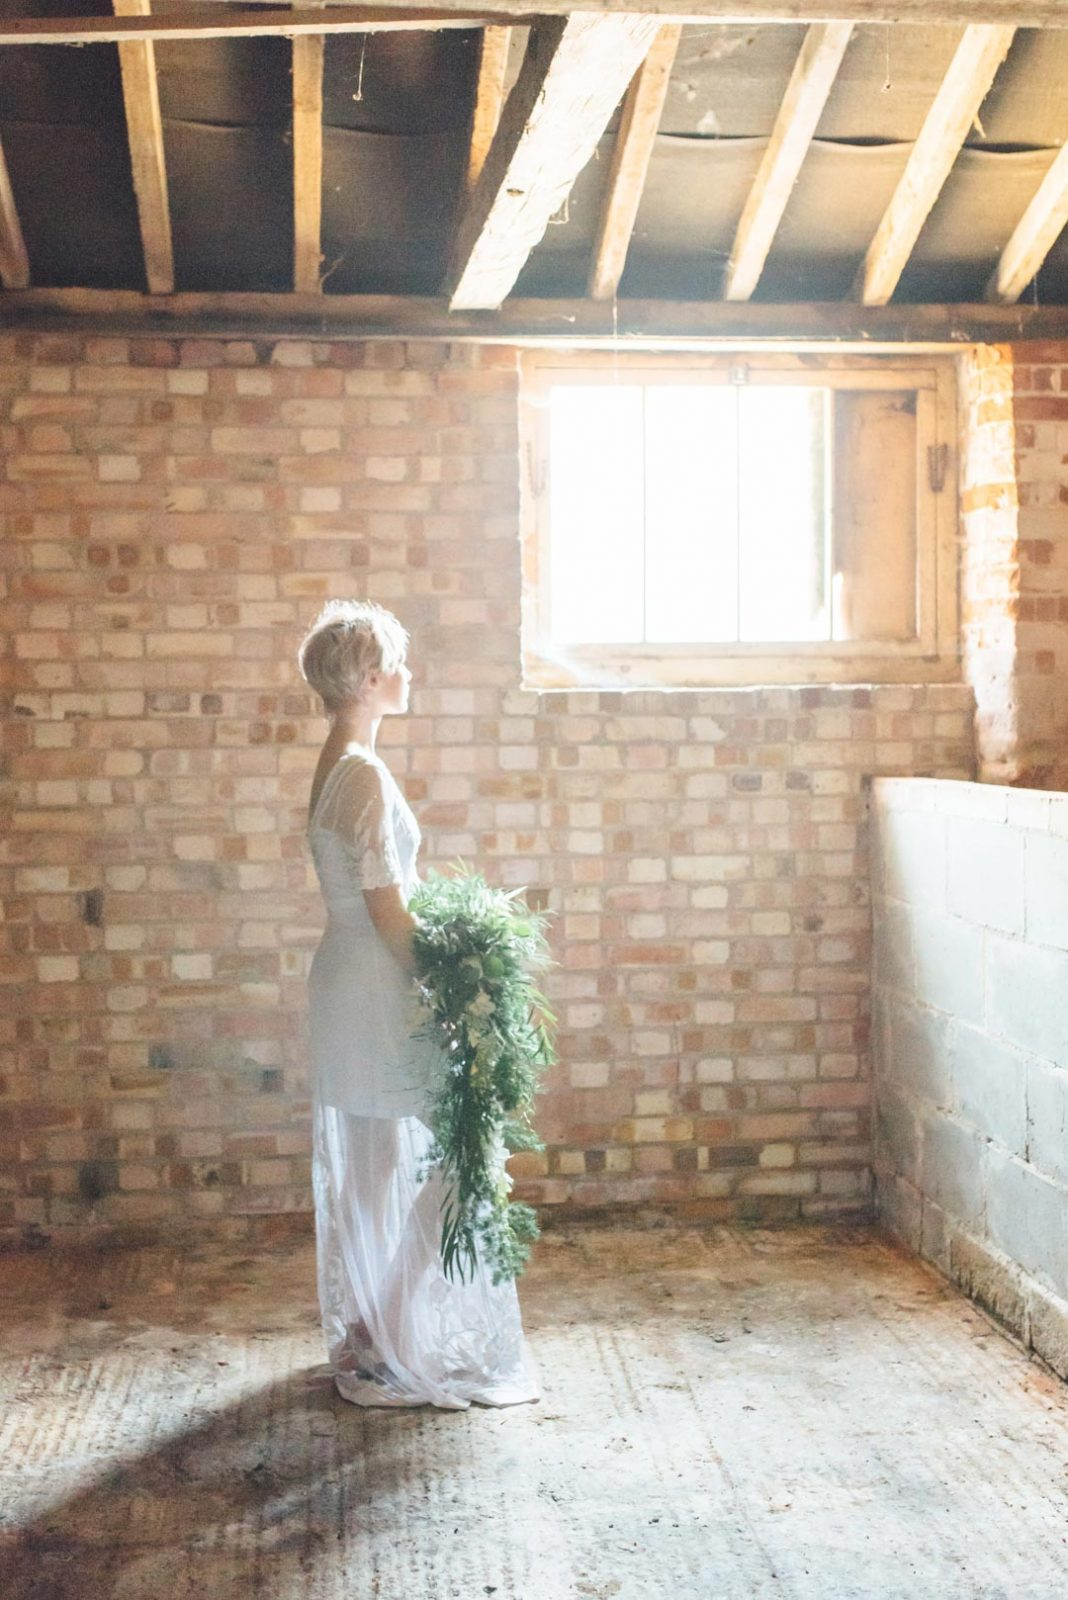 BethMoseleyPhotography_WhiteonWhite-28FINAL1080px wide-163